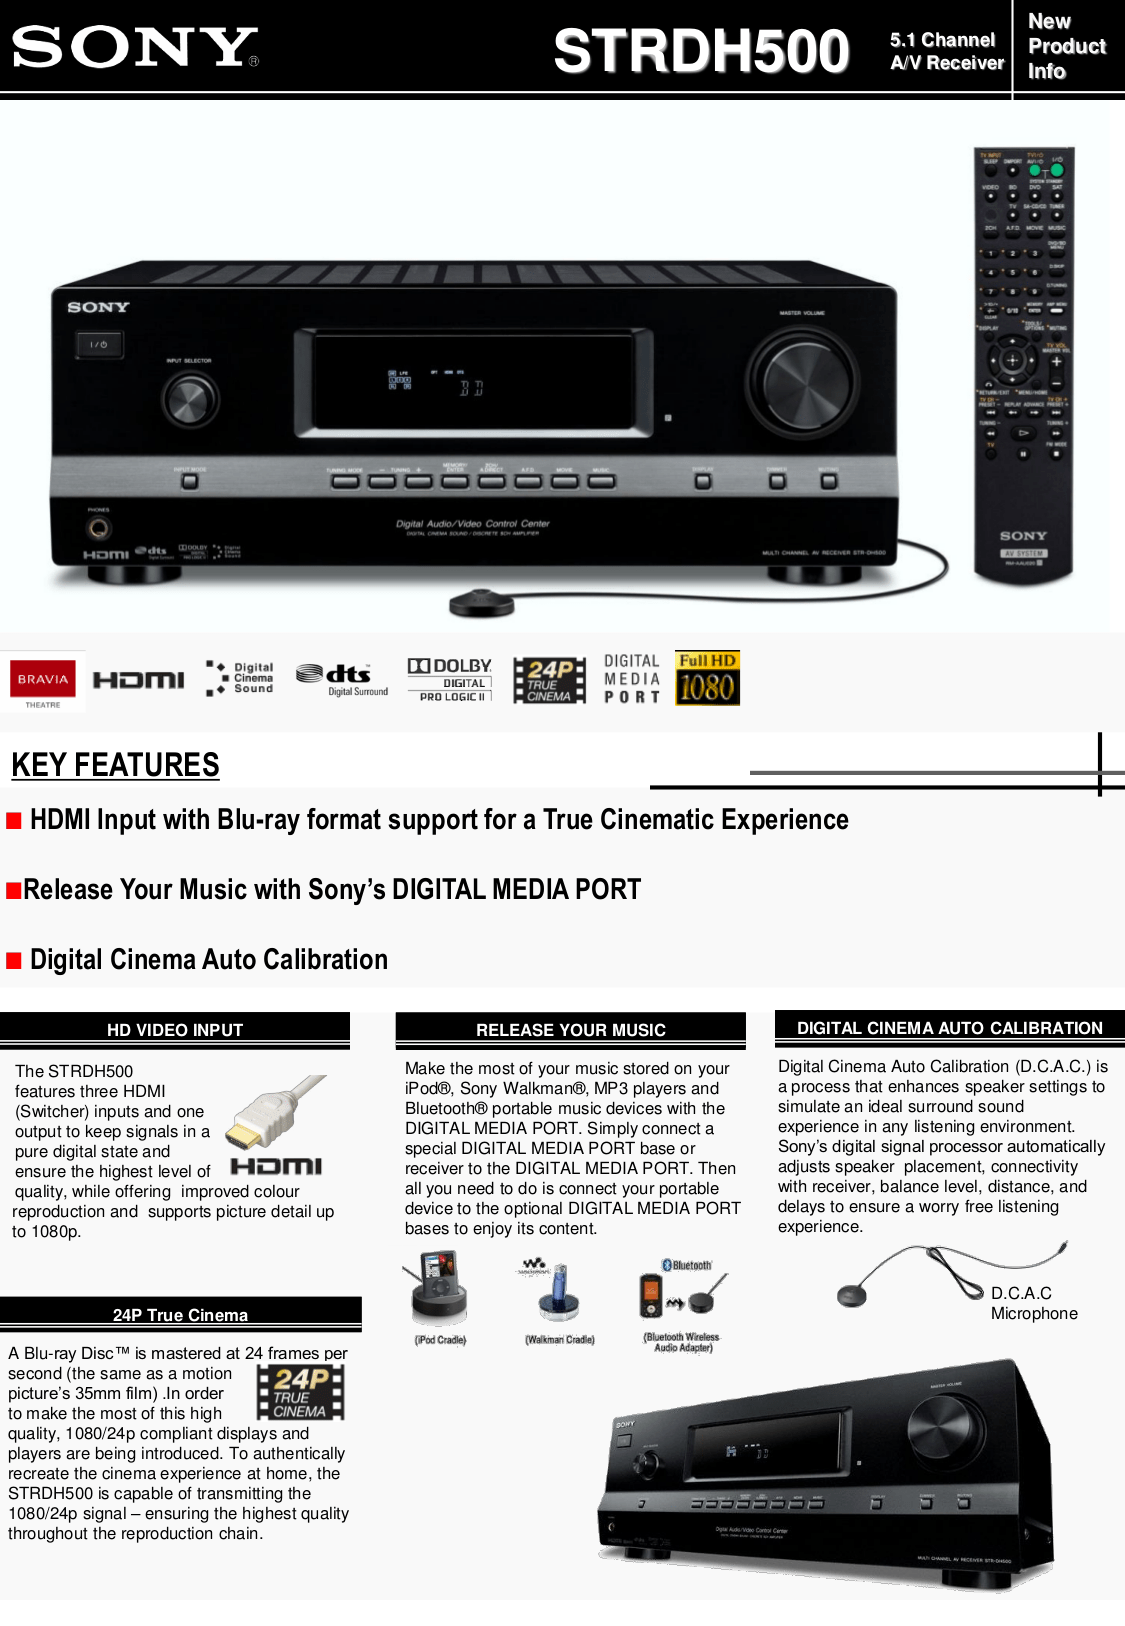 Download free pdf for Sony STR-DH500 Receiver manual